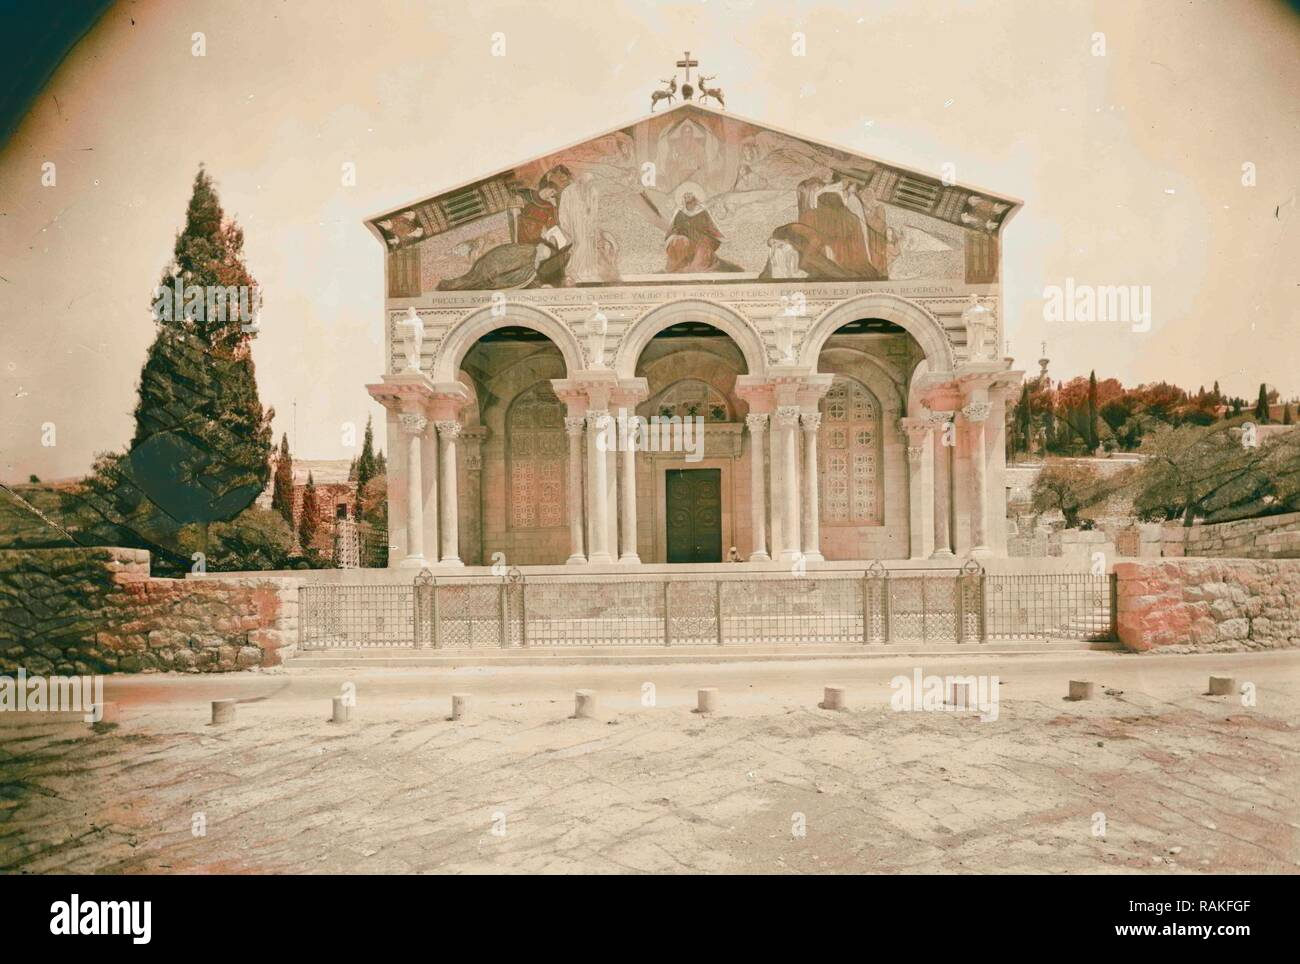 The Basilica of Gethsemane, Church of All Nations or Church of the Agony The fa ade showing portico and colorful reimagined - Stock Image